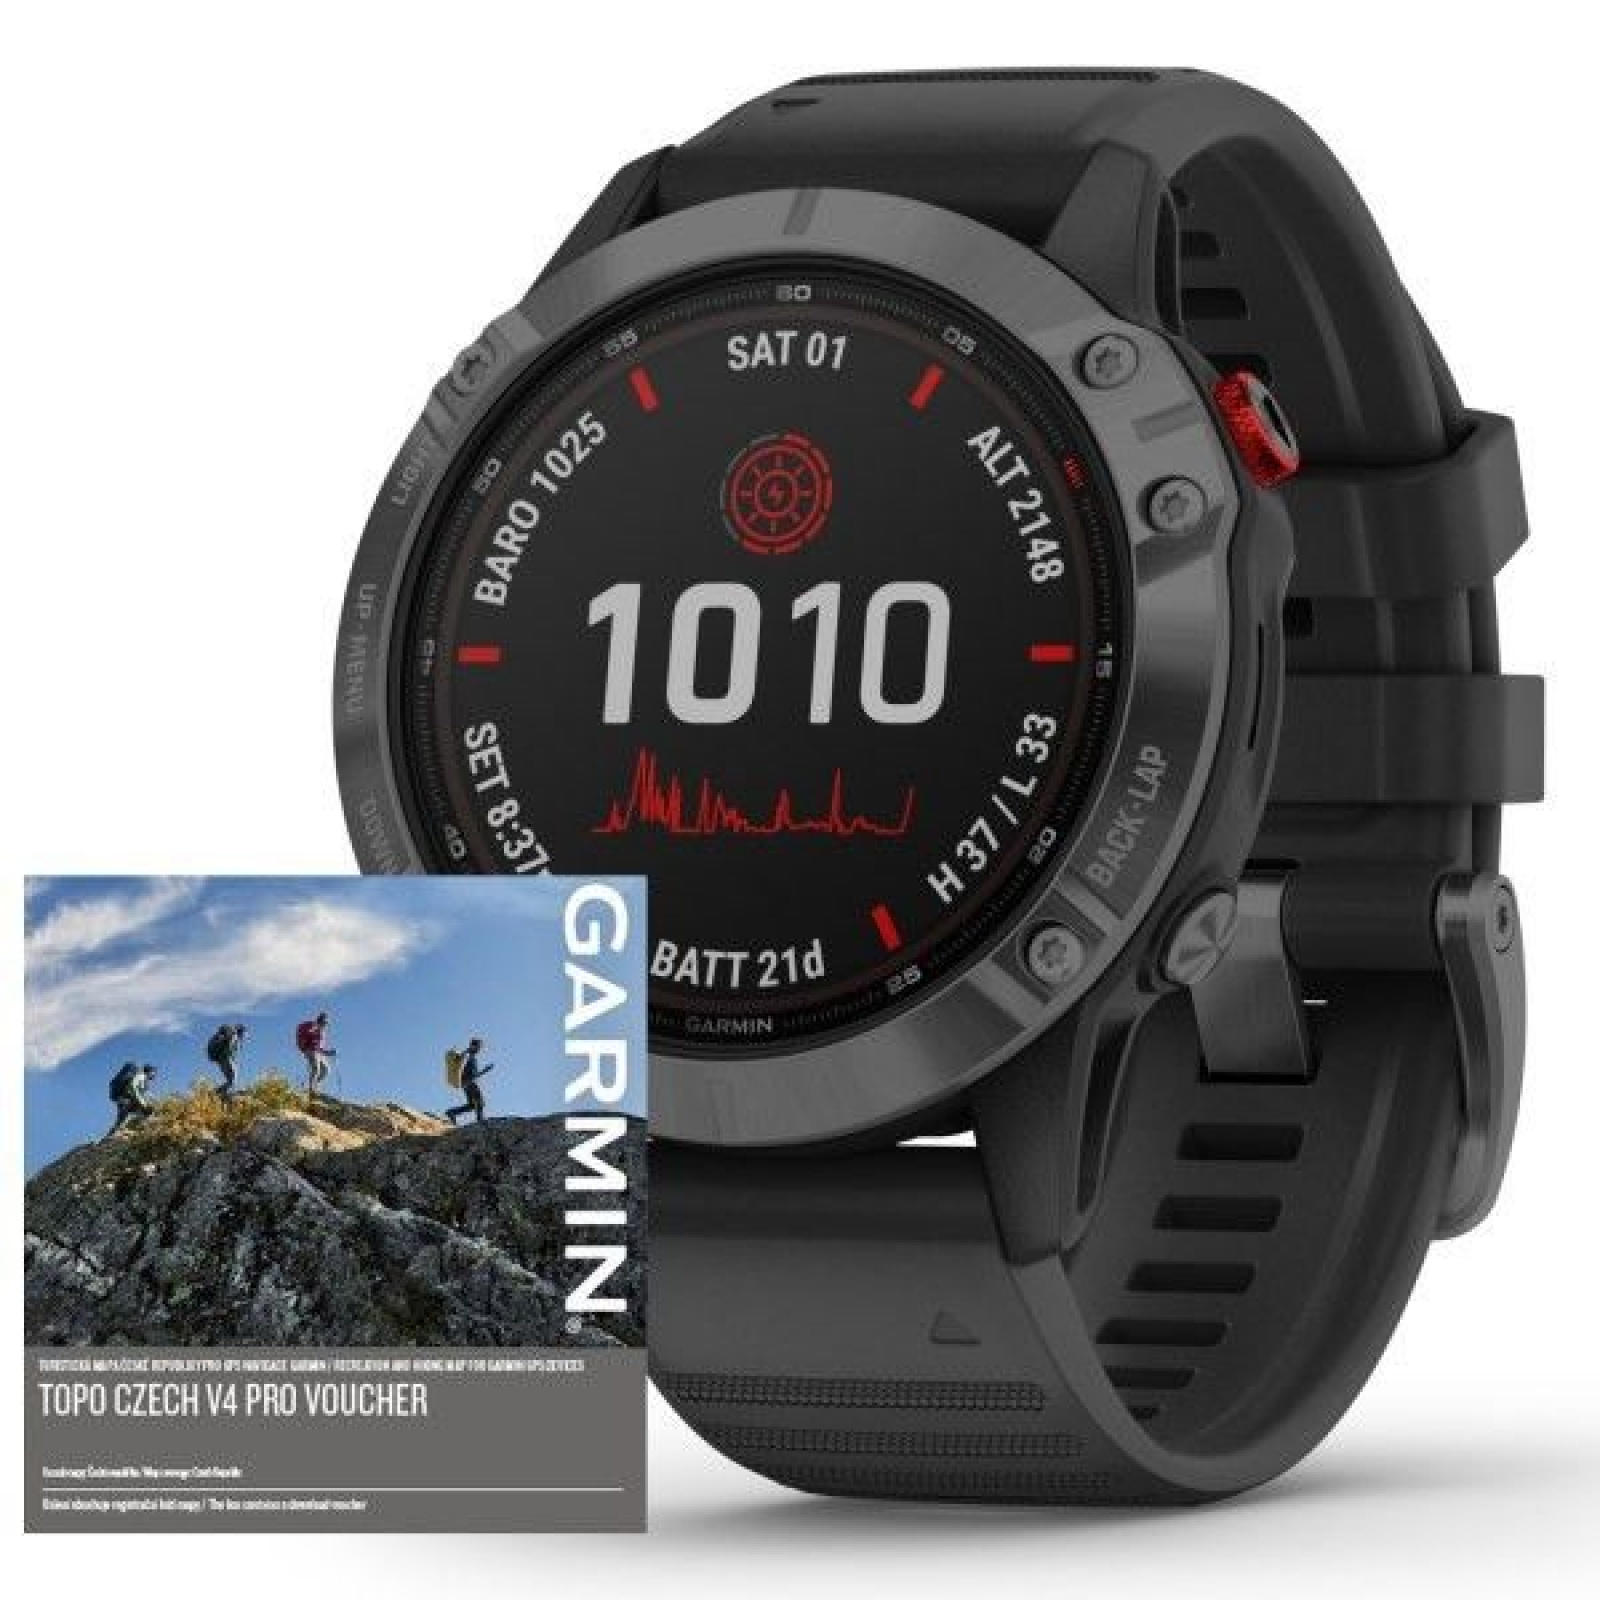 https://www.badec.store/produkty_img/garmin-fenix6-pro-solar-gray-black-band-map-music-1609495952L.jpg